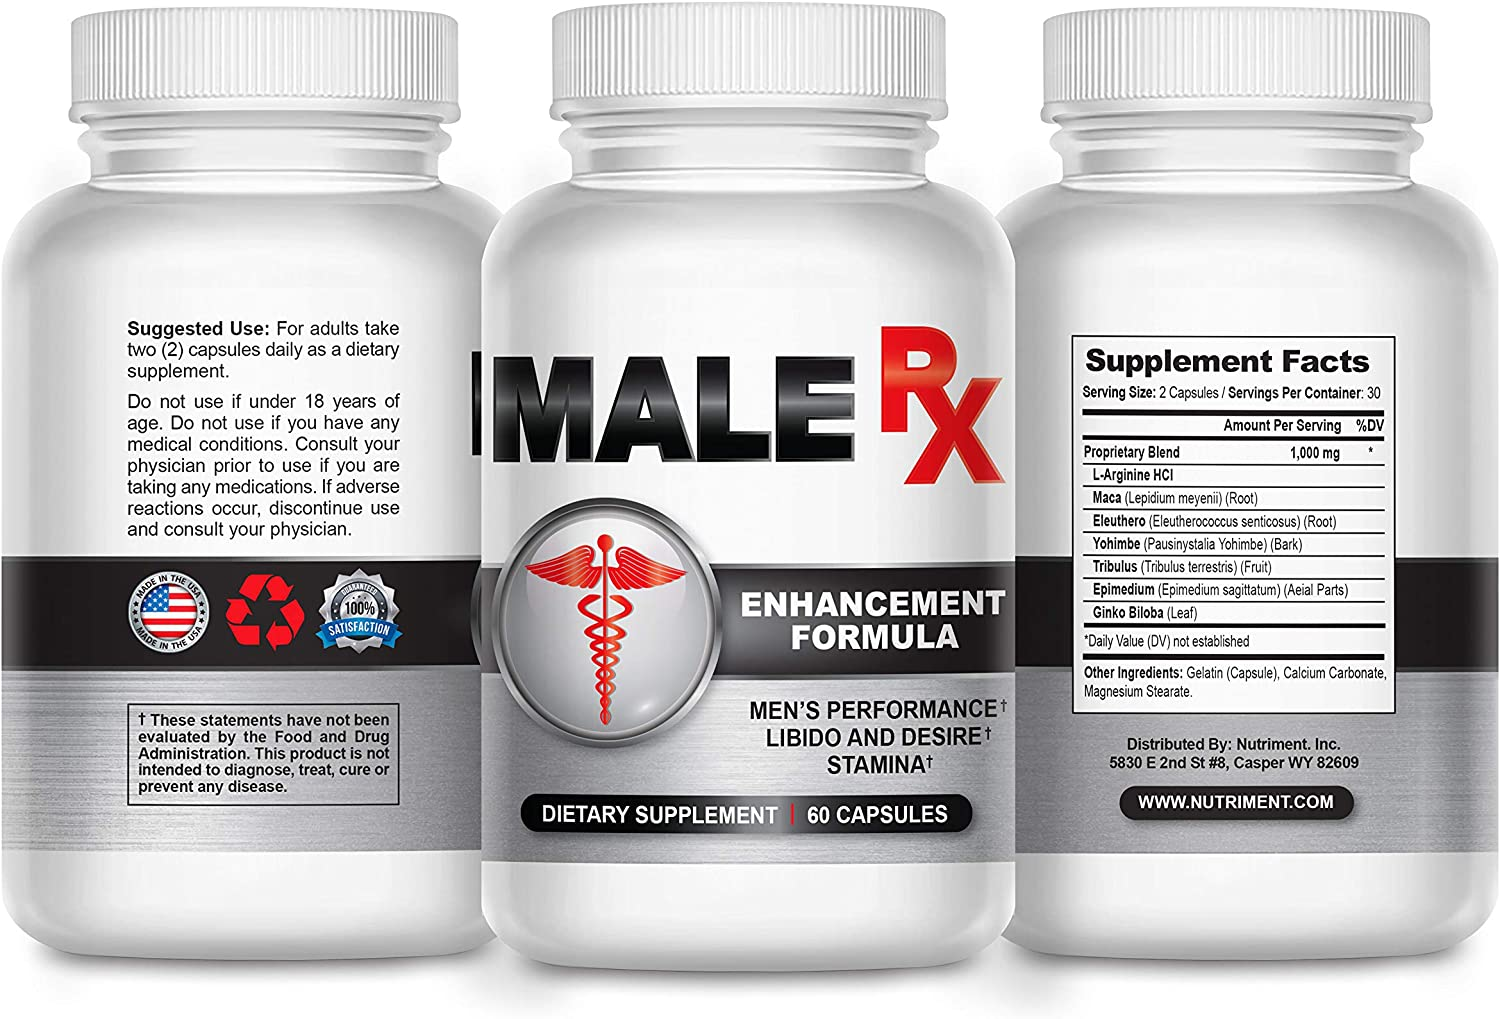 Amazon.com: Male RX Pro- Male Enhancement Pills for Fast Growth-  Enlargement Supplement Made for Men- Fast Acting and Side Effect Free-  Increase Male Size and Add Inches Fast- 60 Caps: Health &